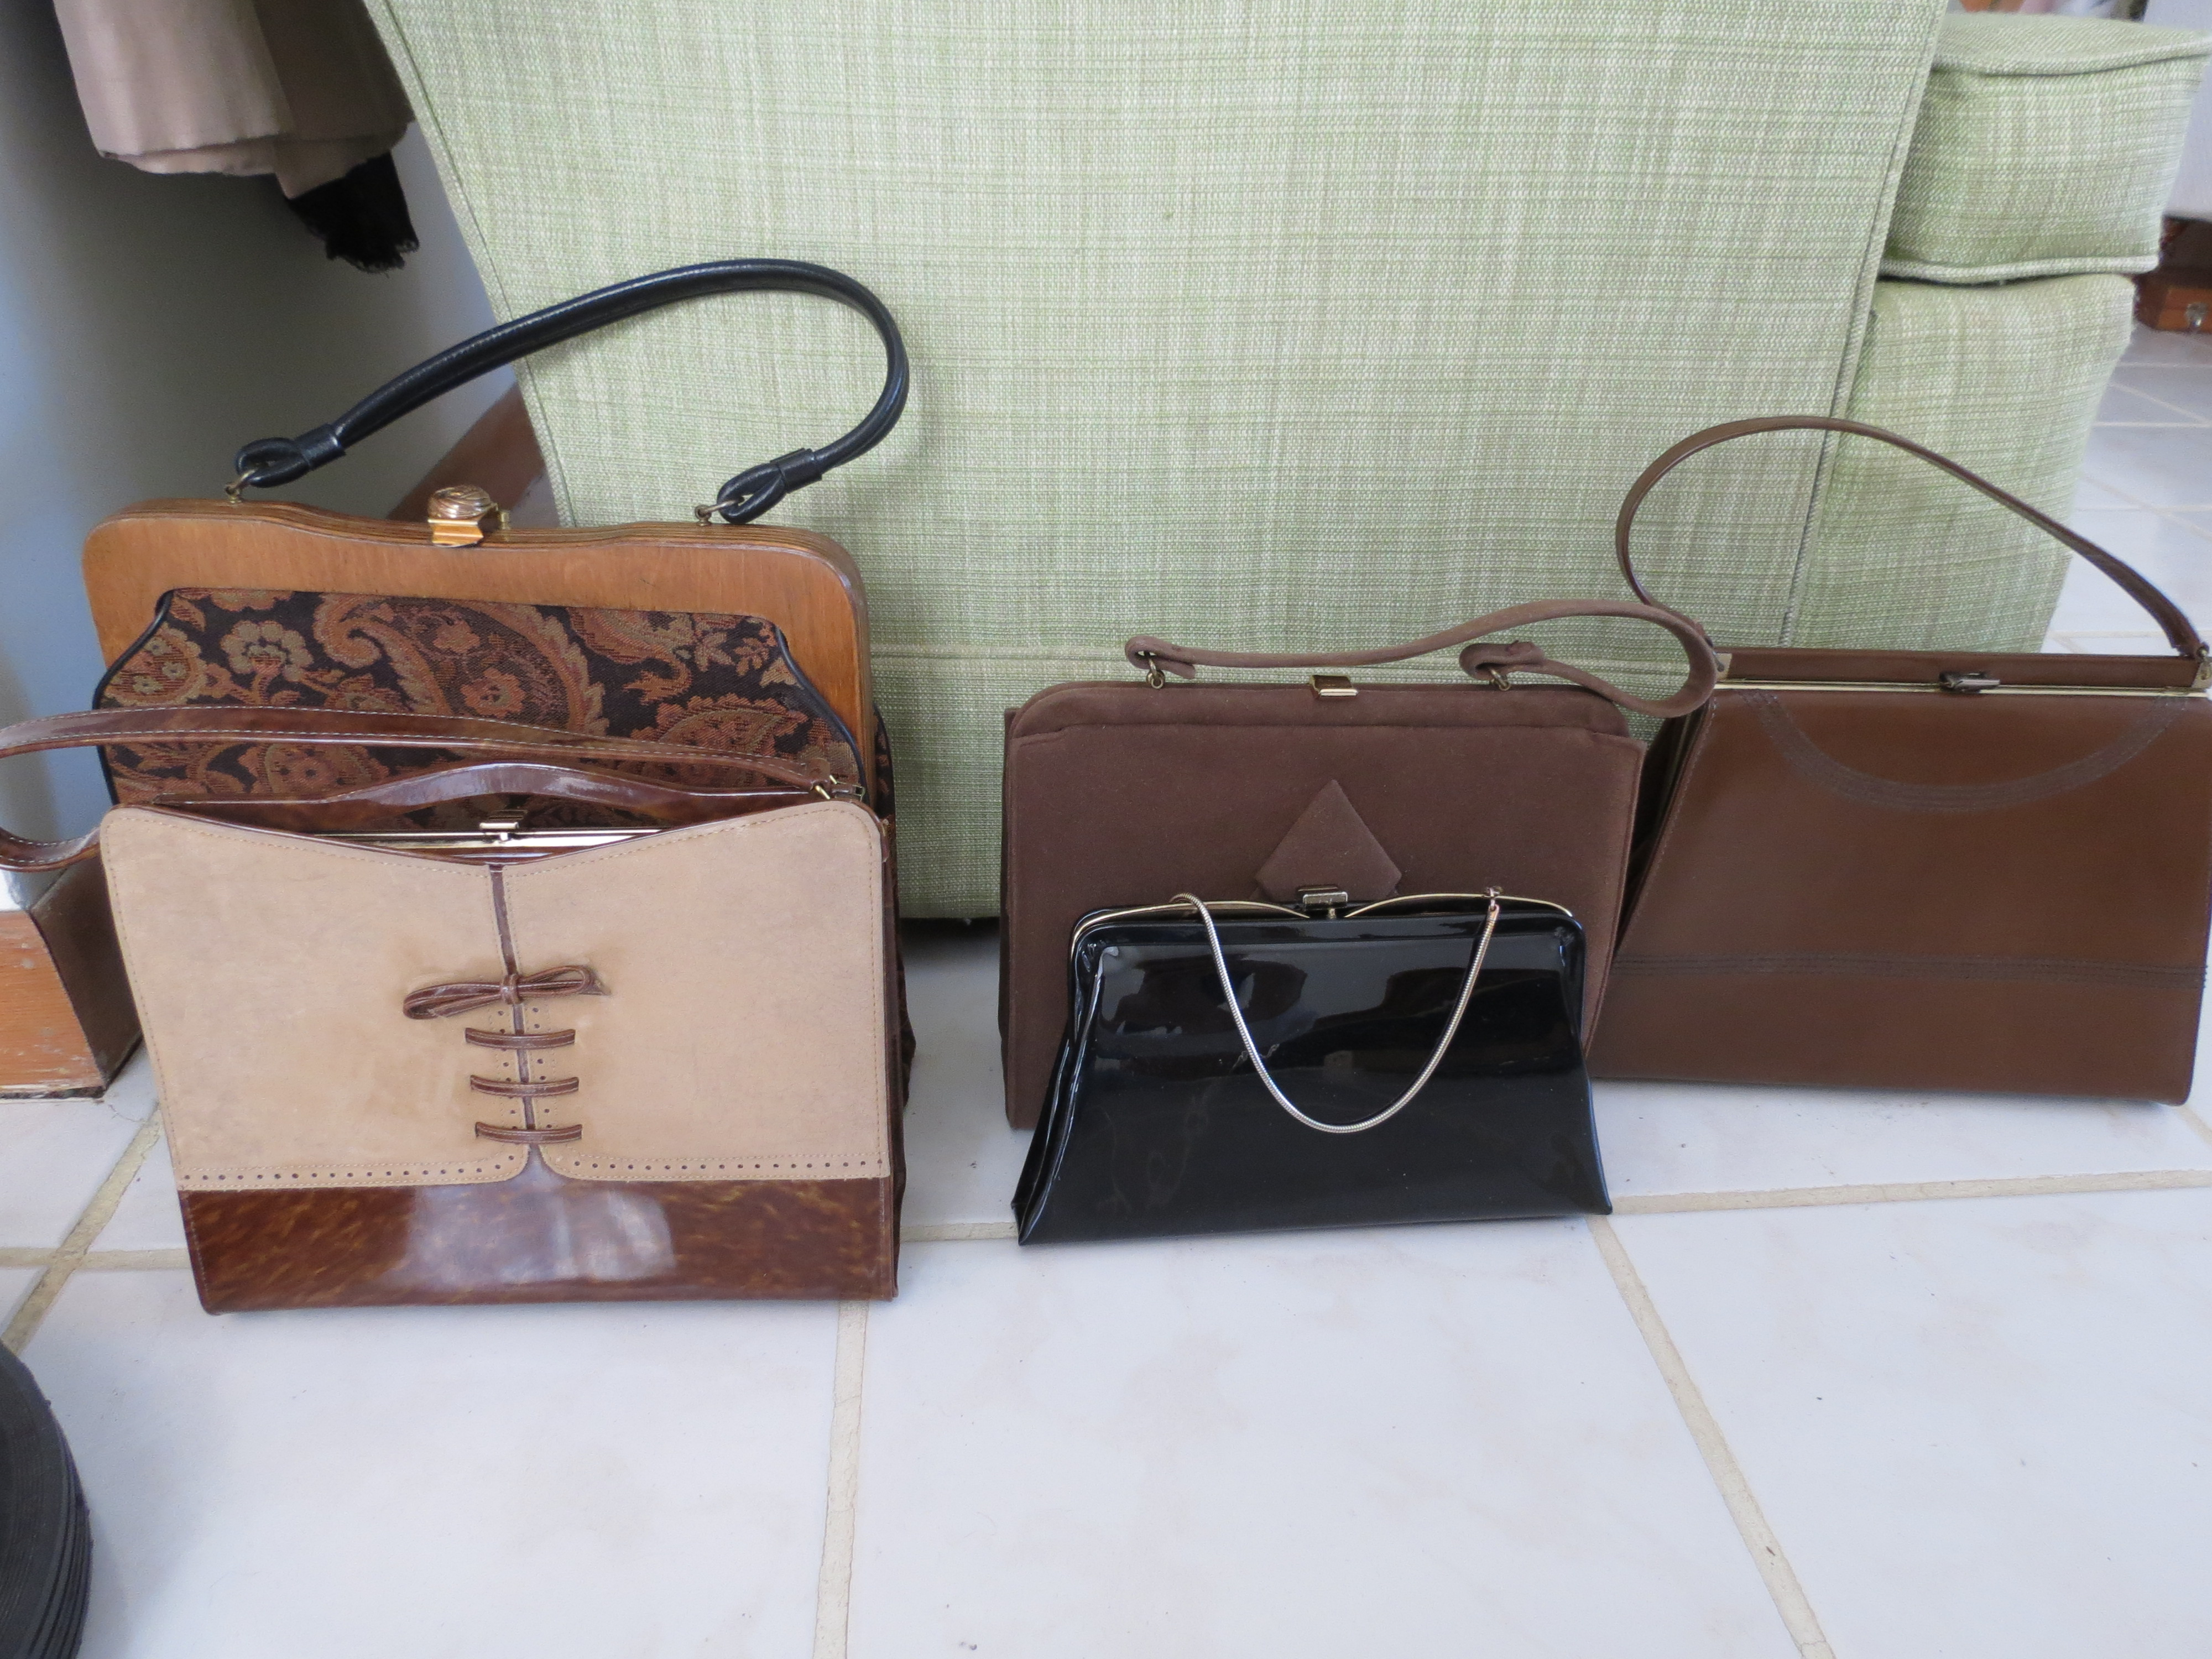 A COLLECTION OF TRUE VINTAGE HANDBAGS FROM THE 1960s